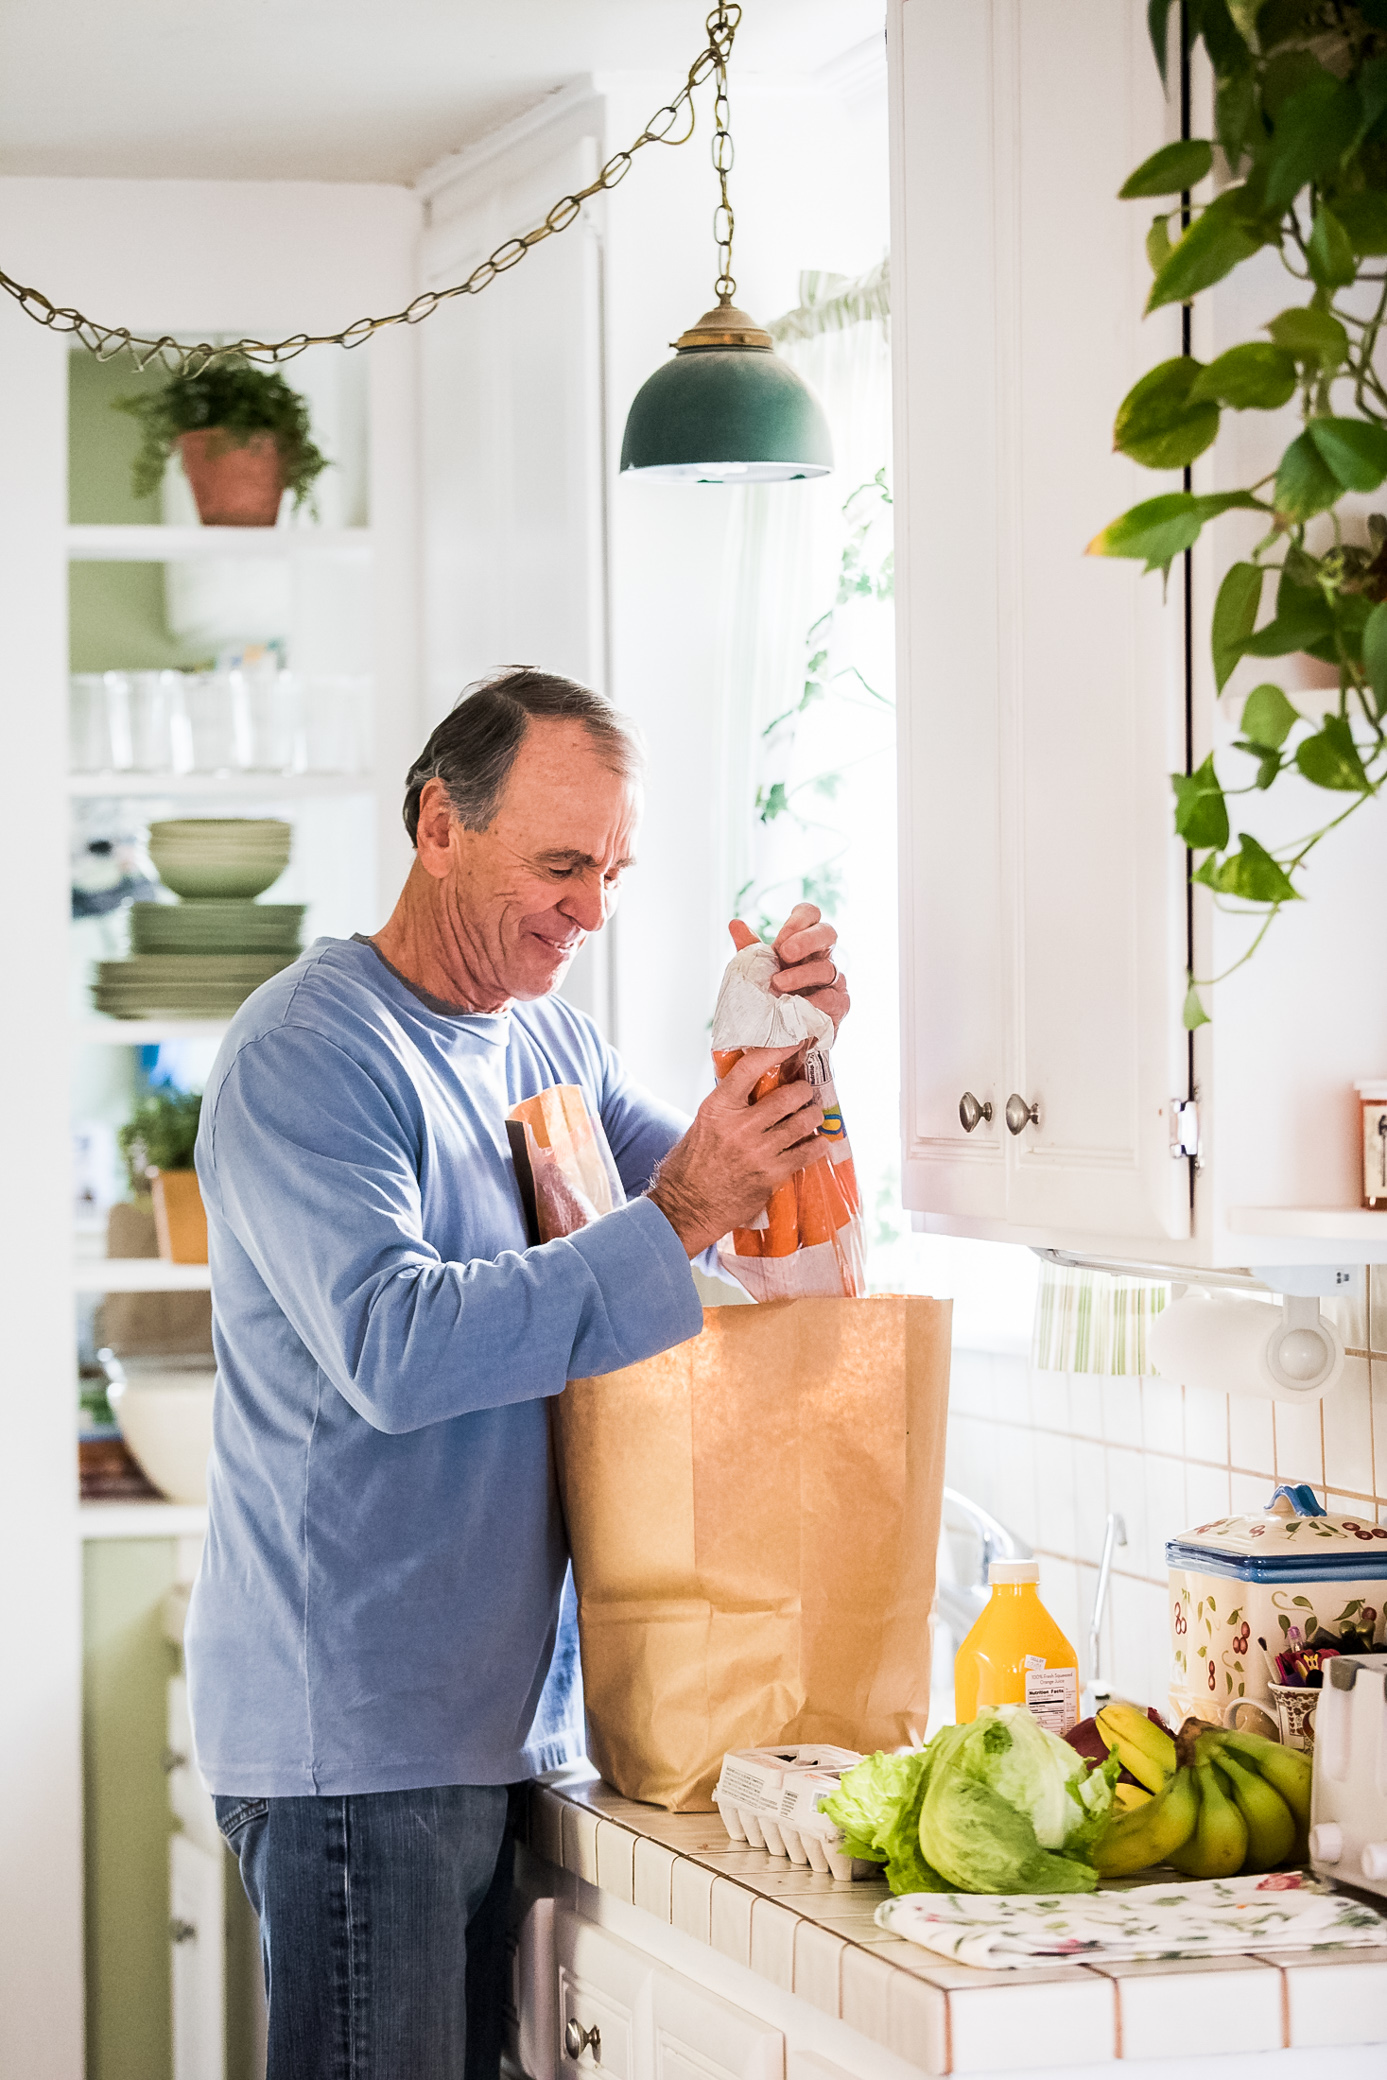 EL_6_ENTERPRISE_6_Groceries_010.jpg